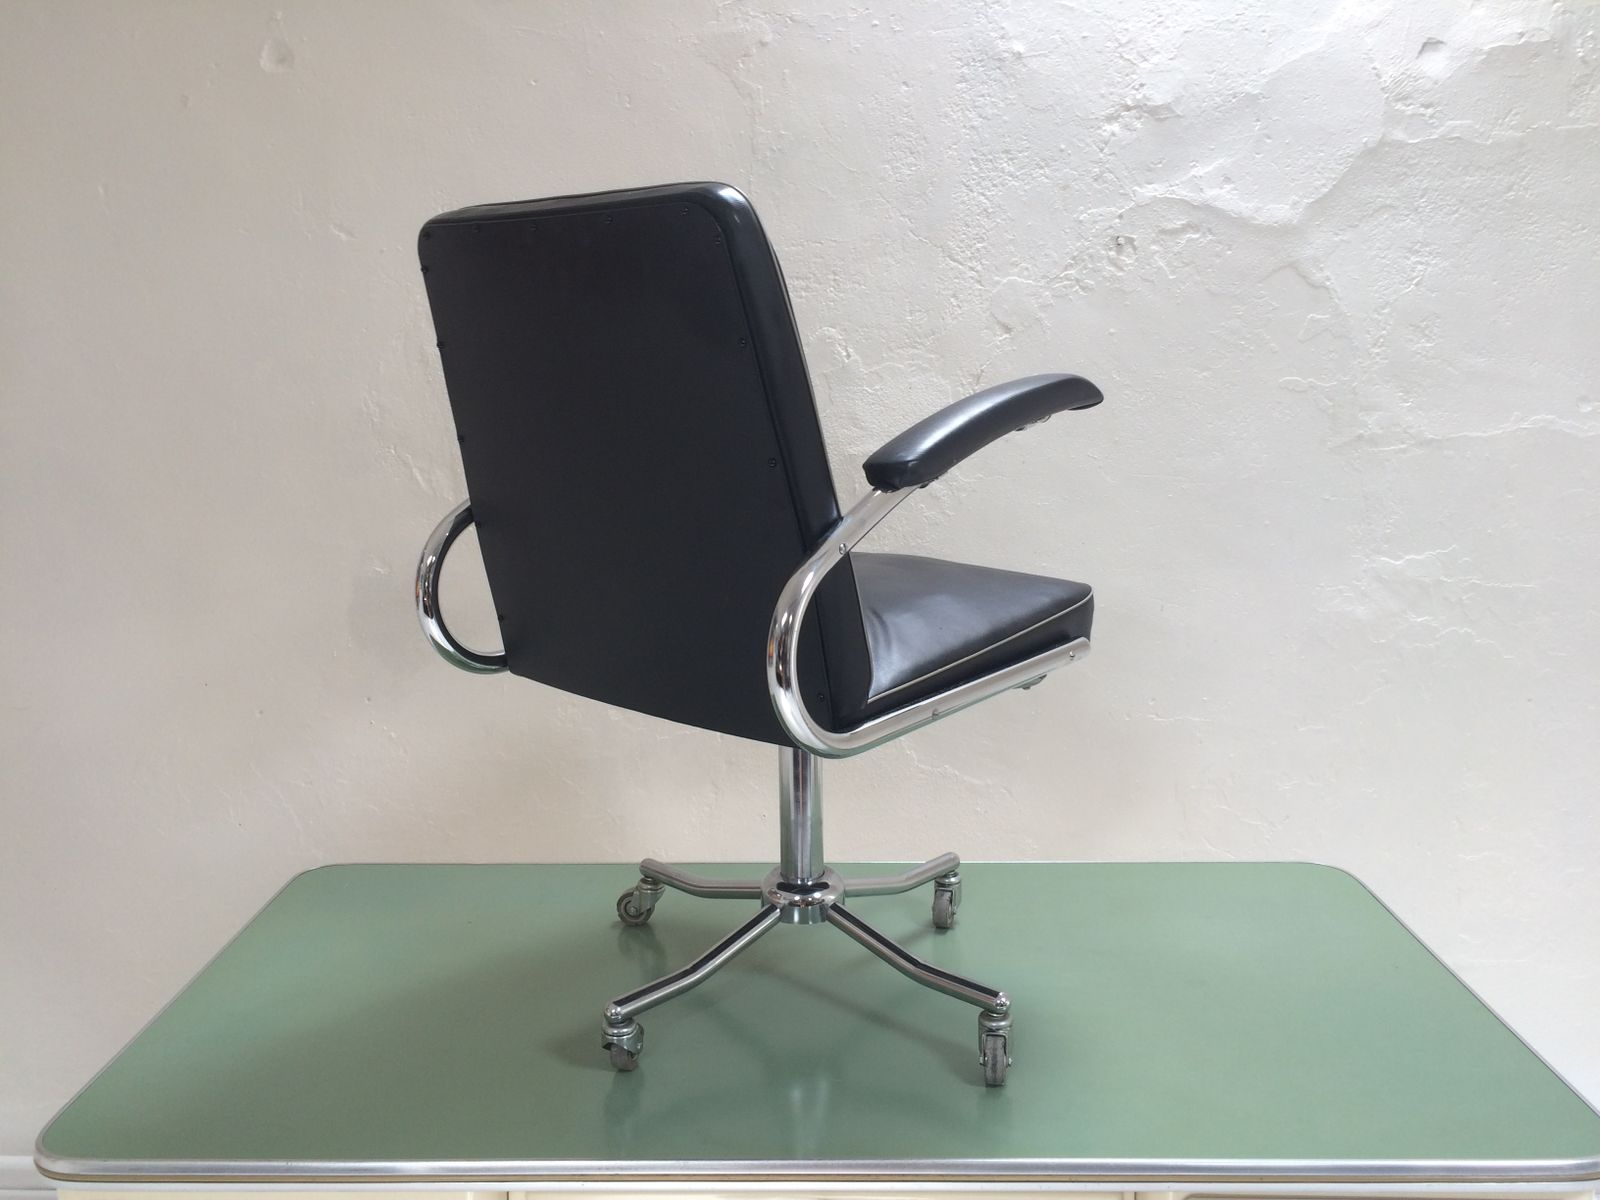 doctor 39 s office desk chair from maquet of rastatt 1950s for sale at